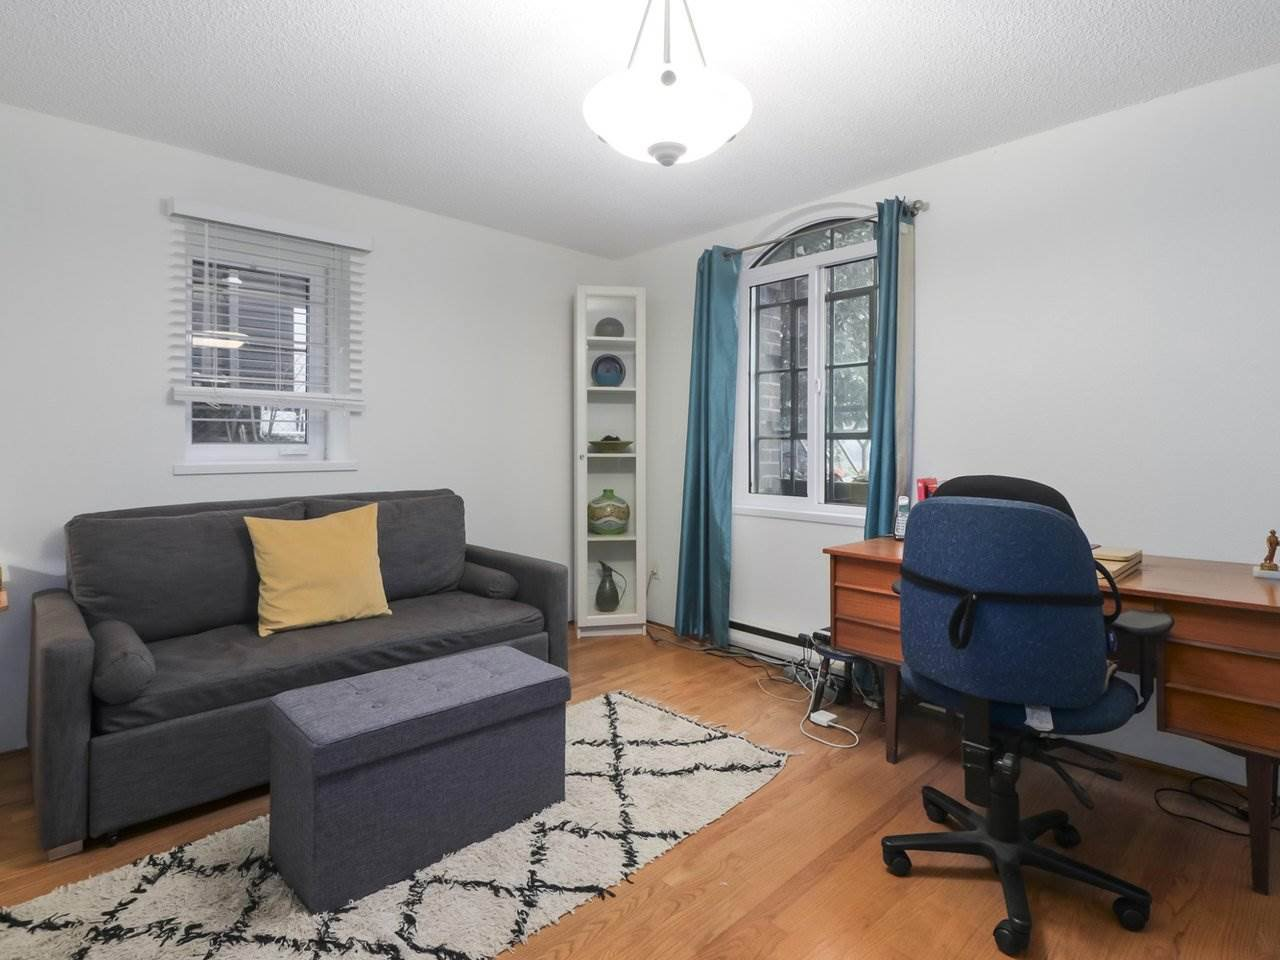 """Photo 7: Photos: 103 1943 E 1ST Avenue in Vancouver: Grandview Woodland Townhouse for sale in """"THE VAULT"""" (Vancouver East)  : MLS®# R2465391"""